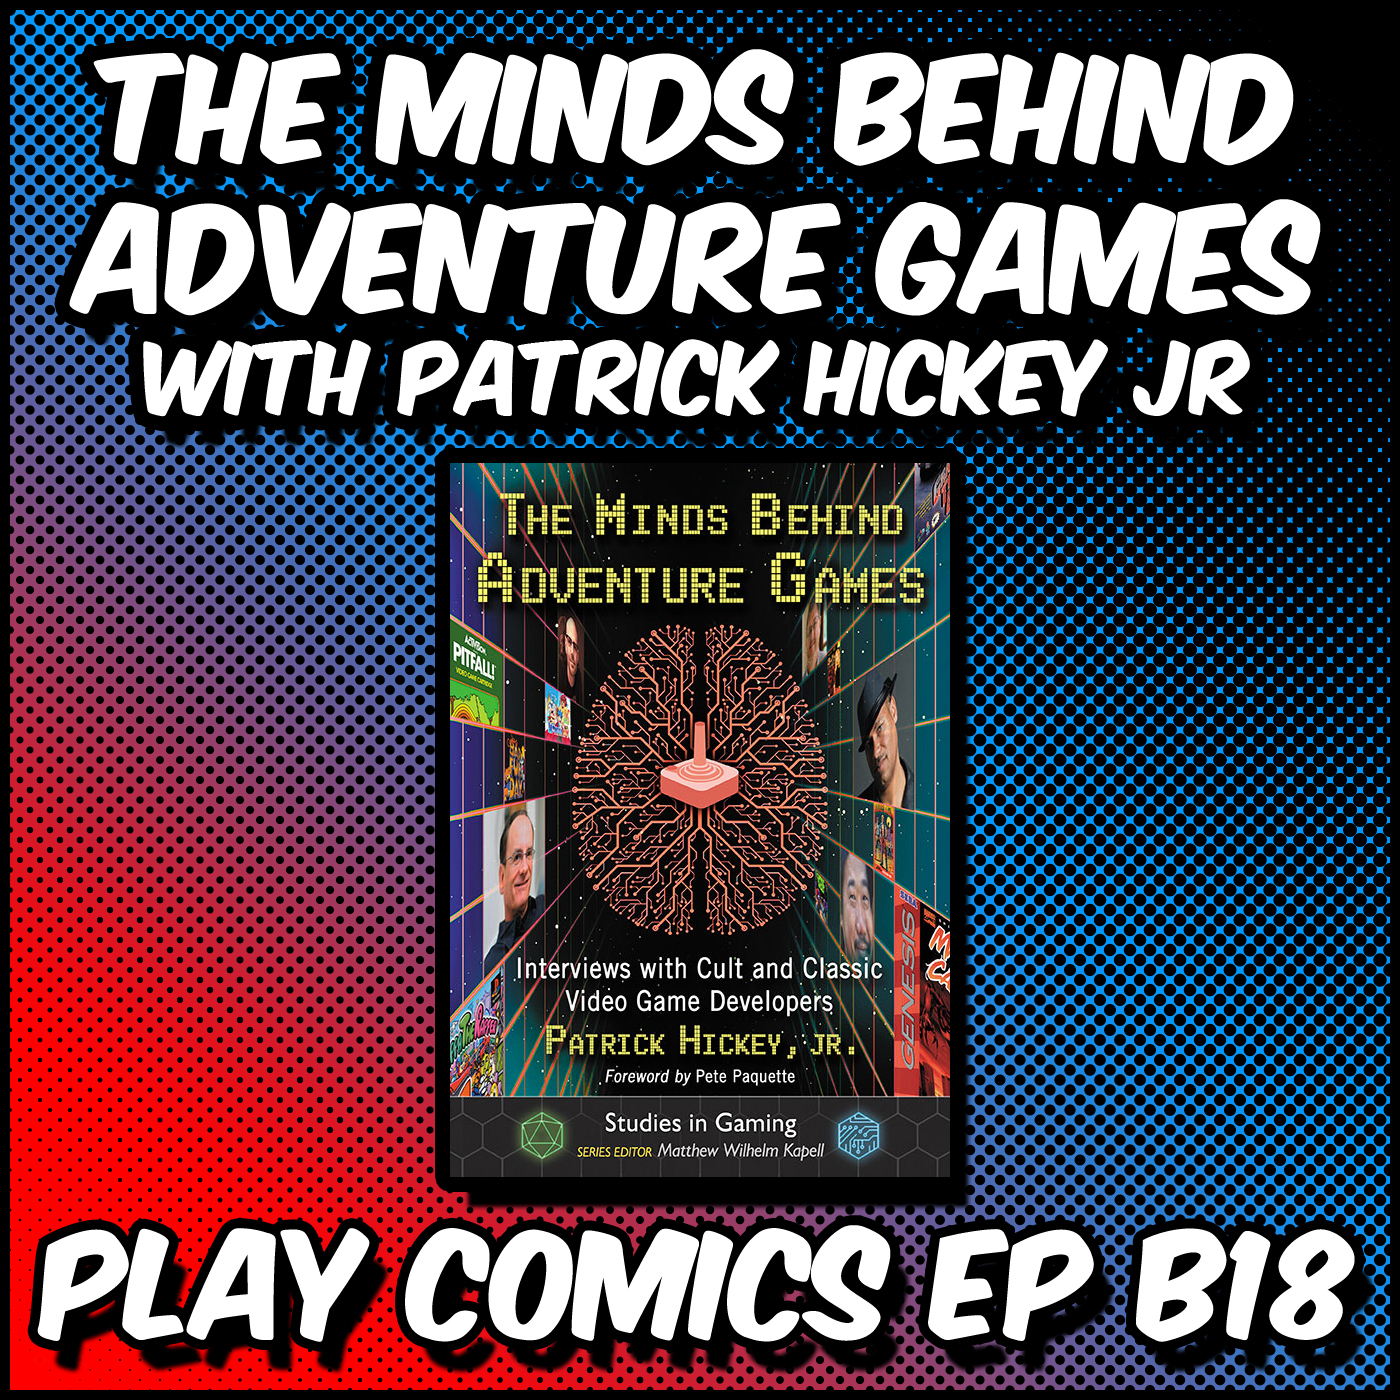 The Minds Behind Adventure Games with Patrick Hickey Jr